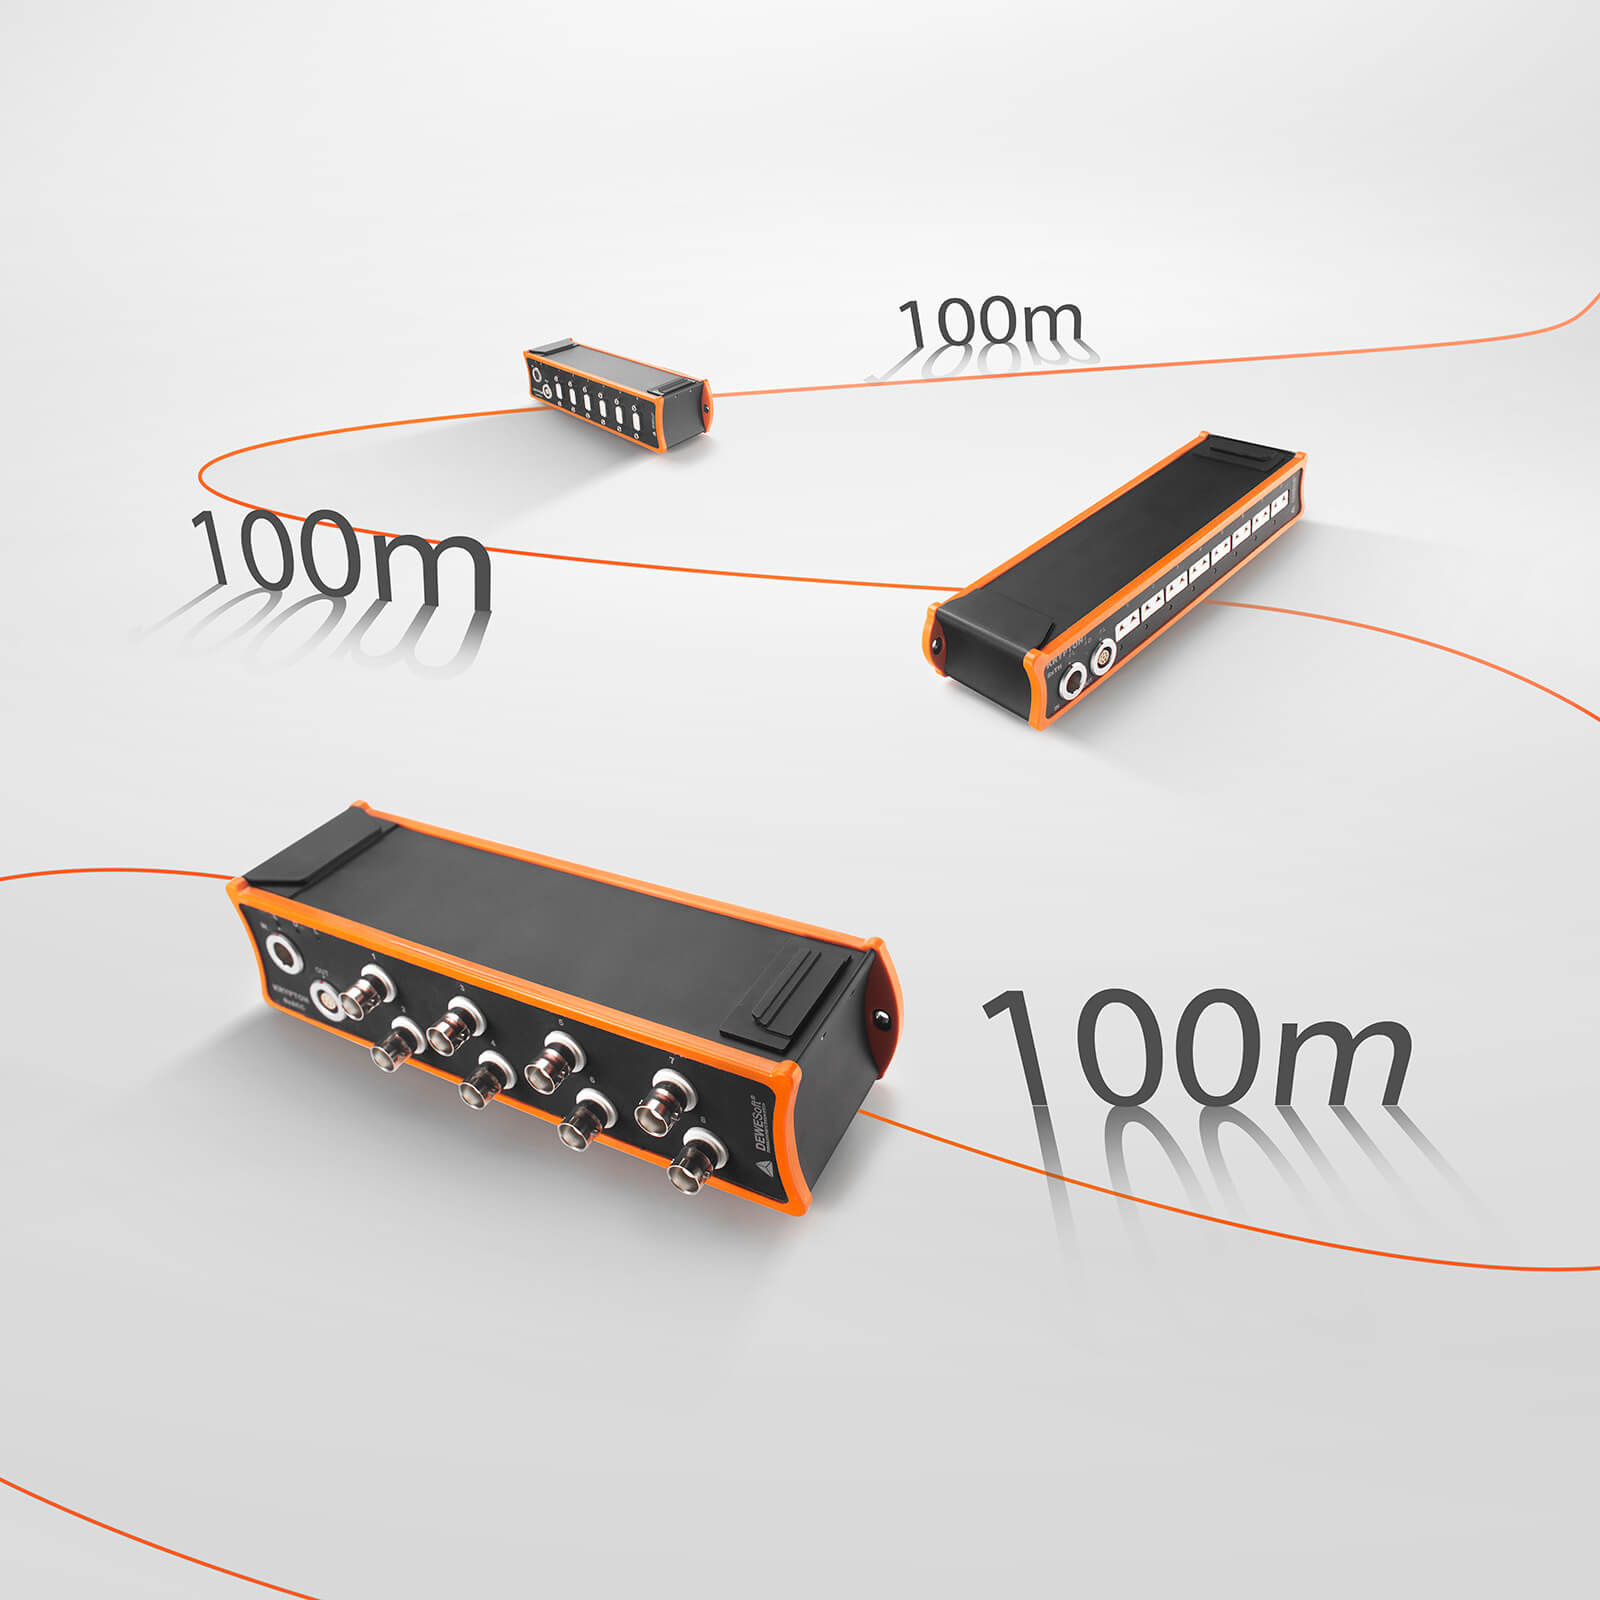 EtherCAT Distributed Data Acquisition